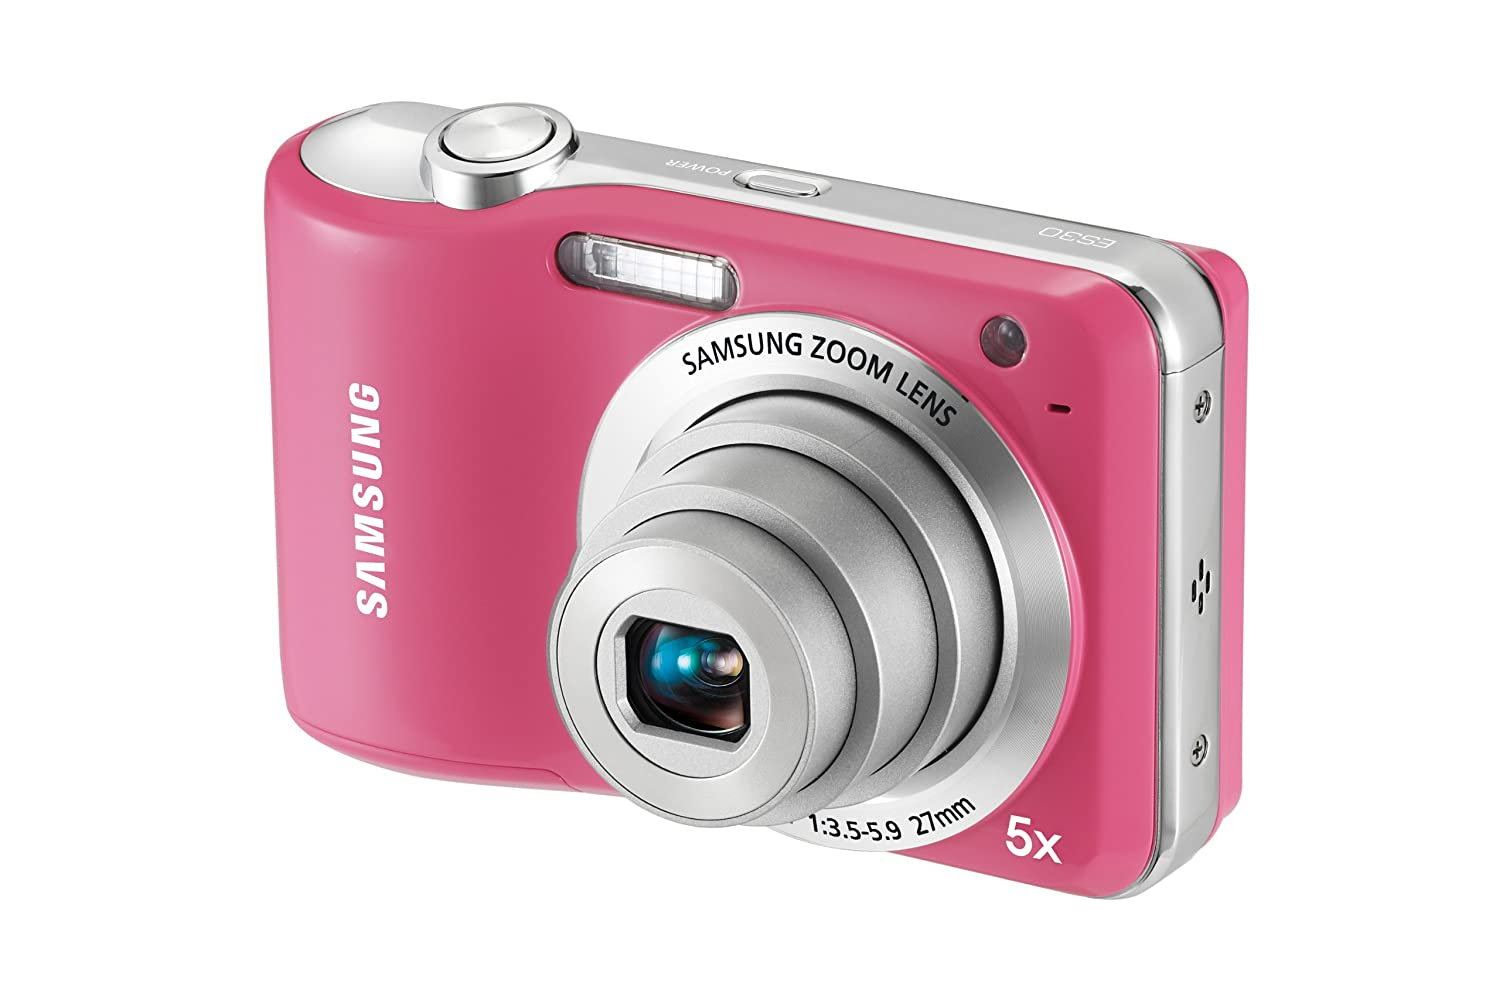 SAMSUNG ES30 DIGITAL CAMERA DOWNLOAD DRIVERS